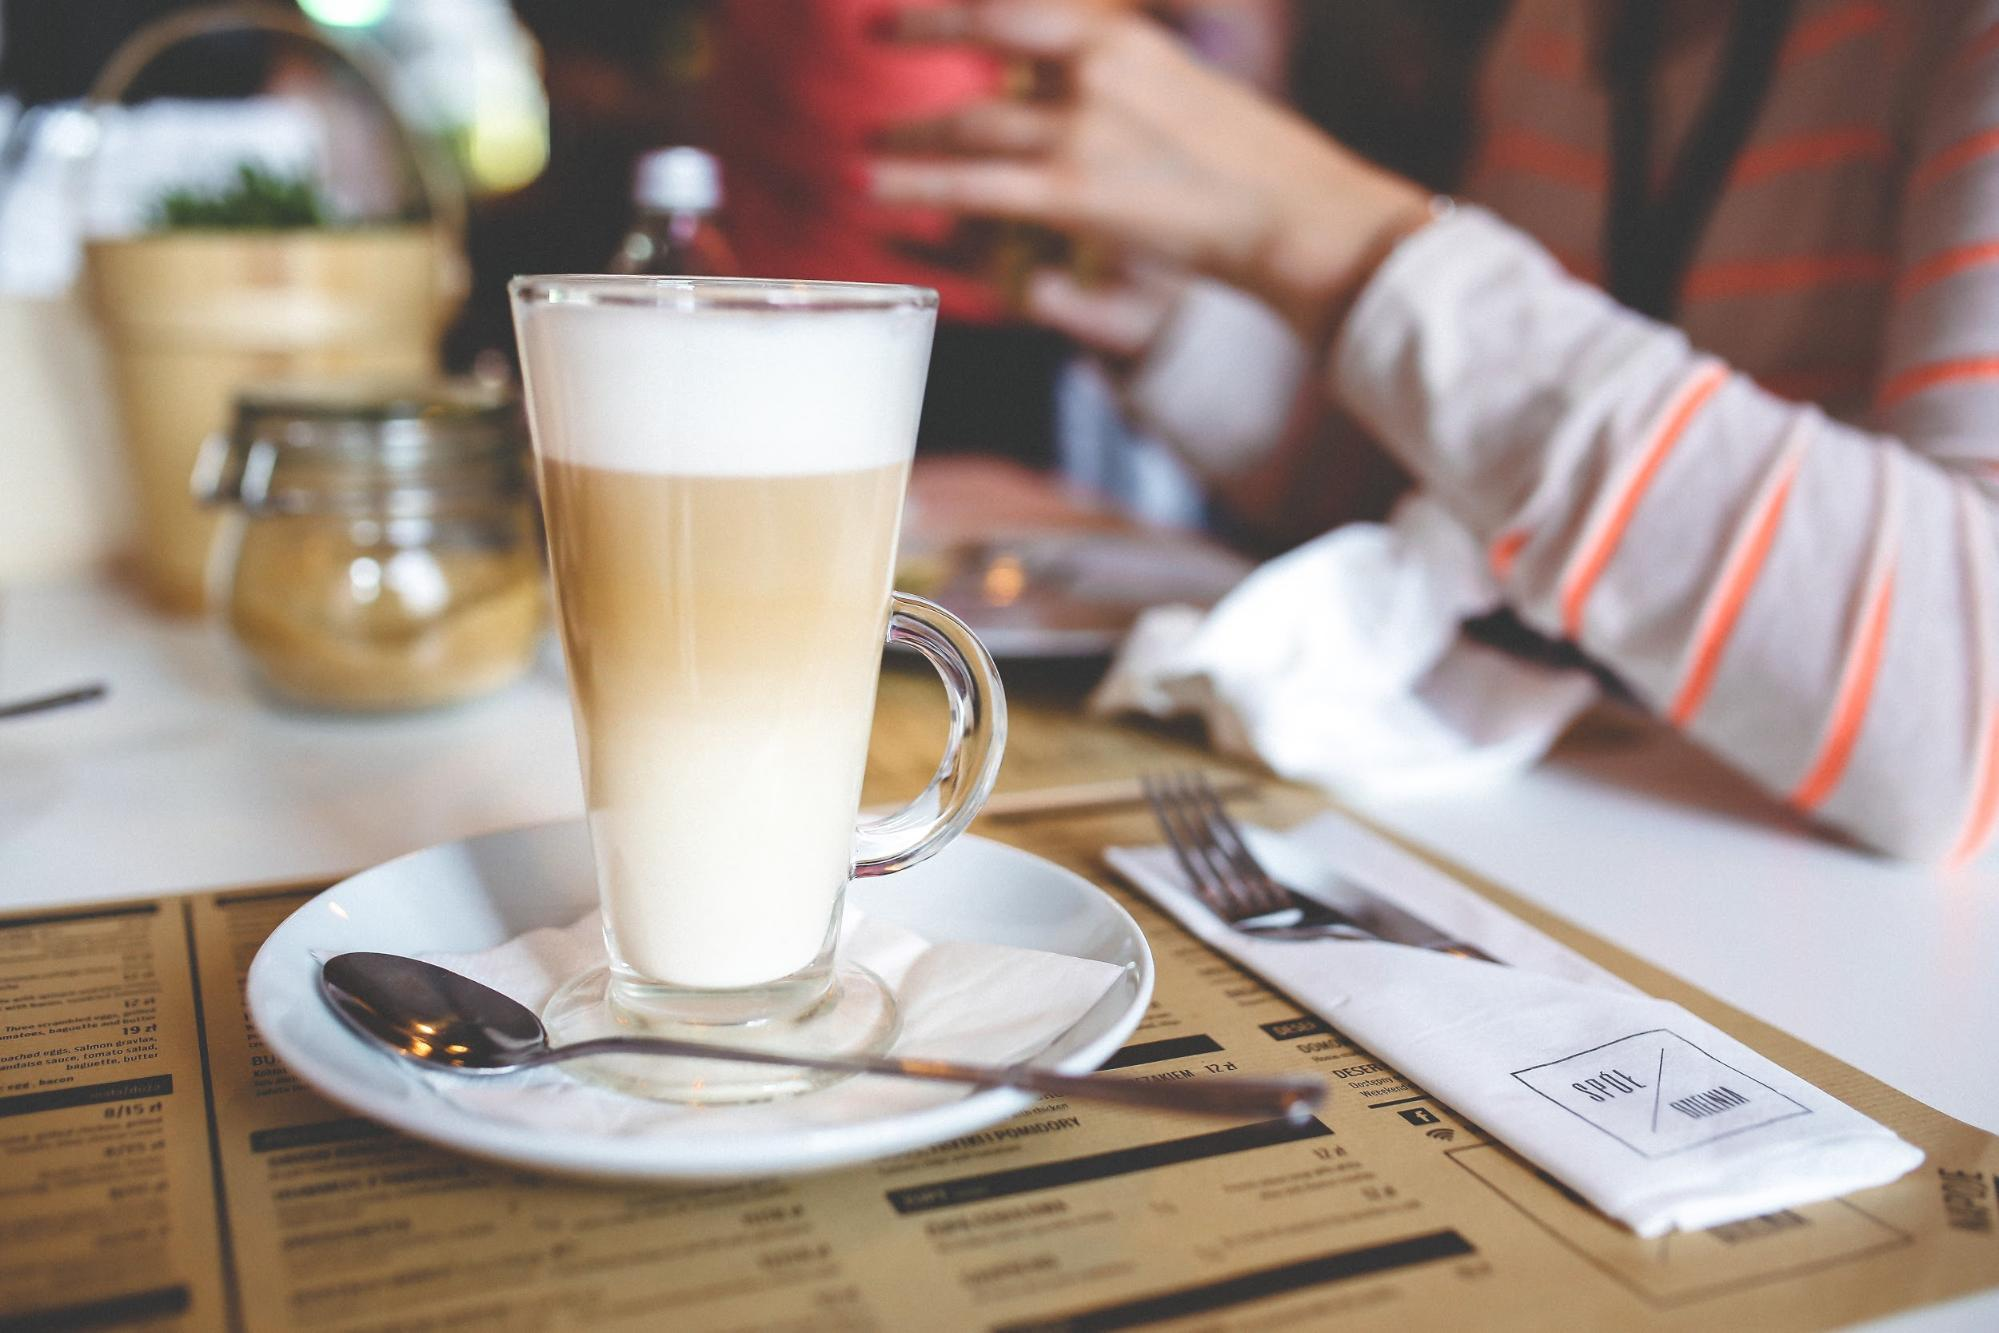 Clean Energy: How to Replace Your Morning Latte with Healthy Habits